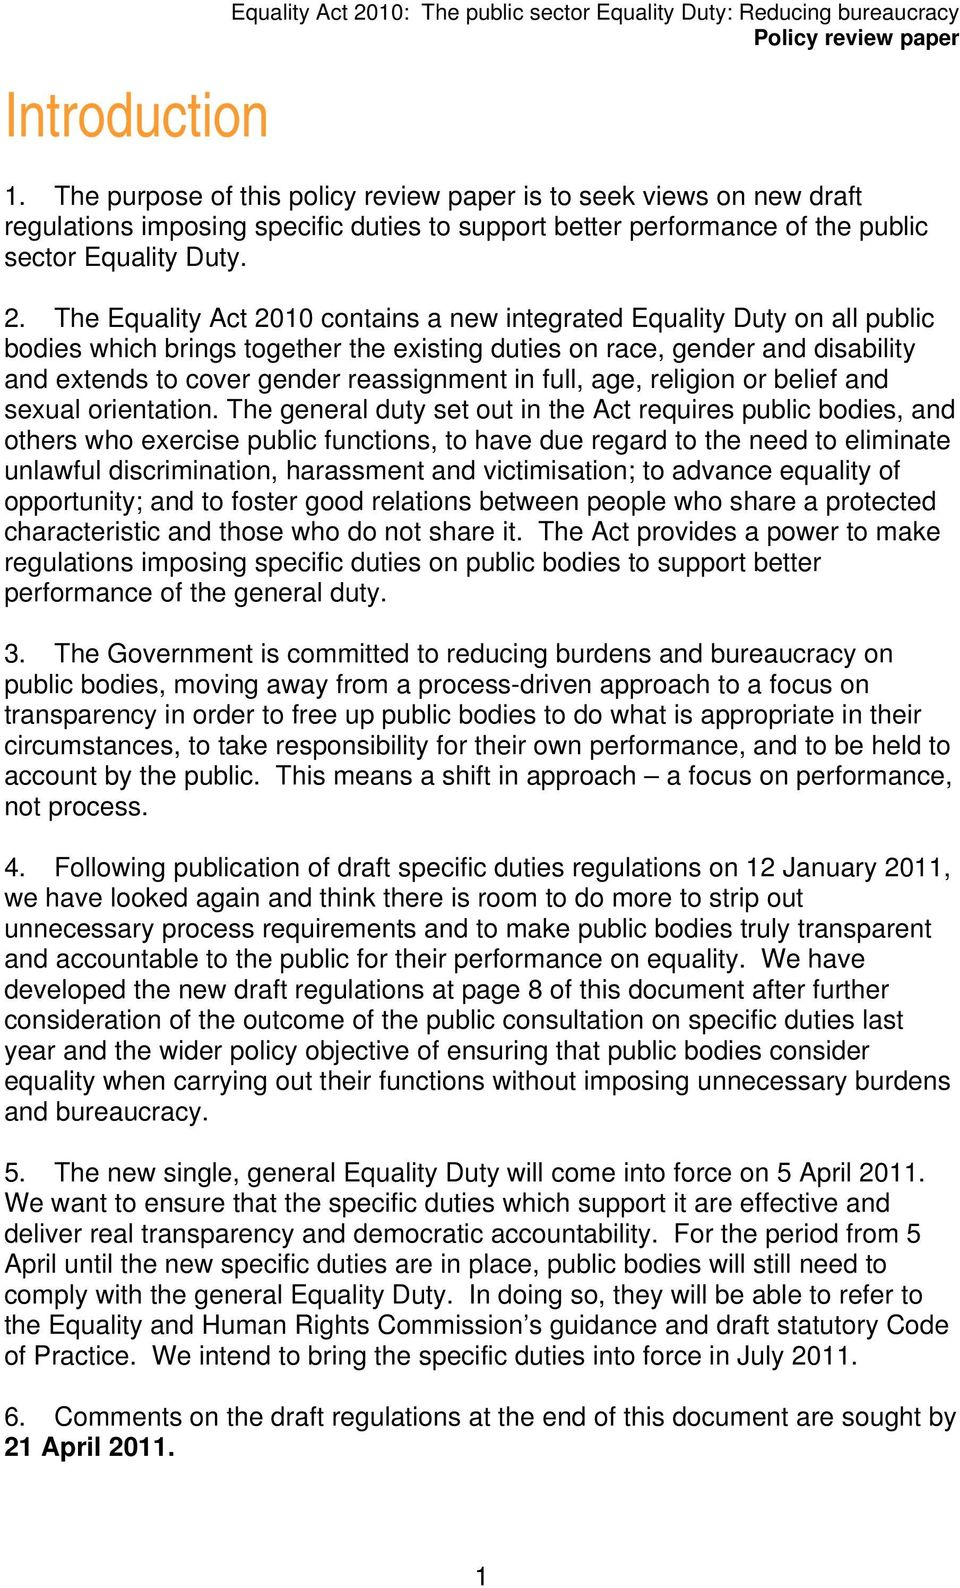 The Equality Act 2010 contains a new integrated Equality Duty on all public bodies which brings together the existing duties on race, gender and disability and extends to cover gender reassignment in